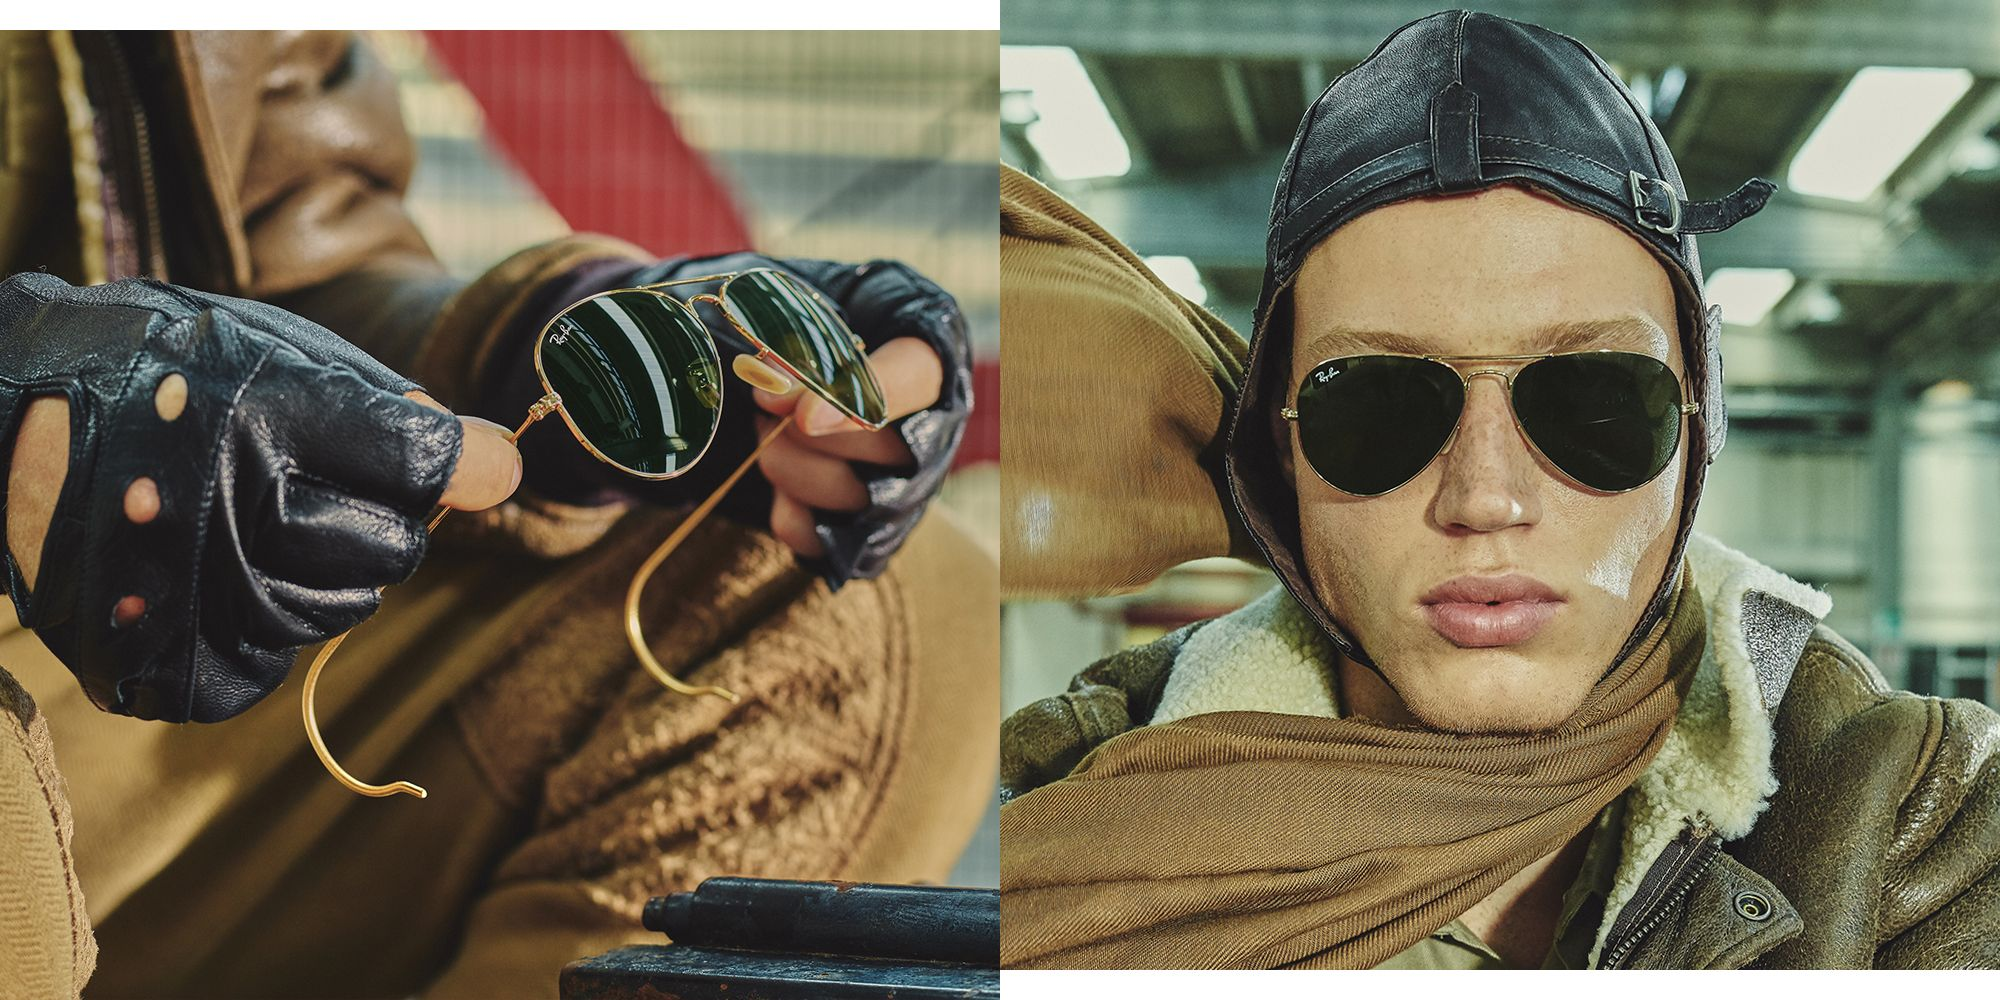 Ray-Ban's Reloaded Program Just Brought Back Some Cool-As-Hell Aviators